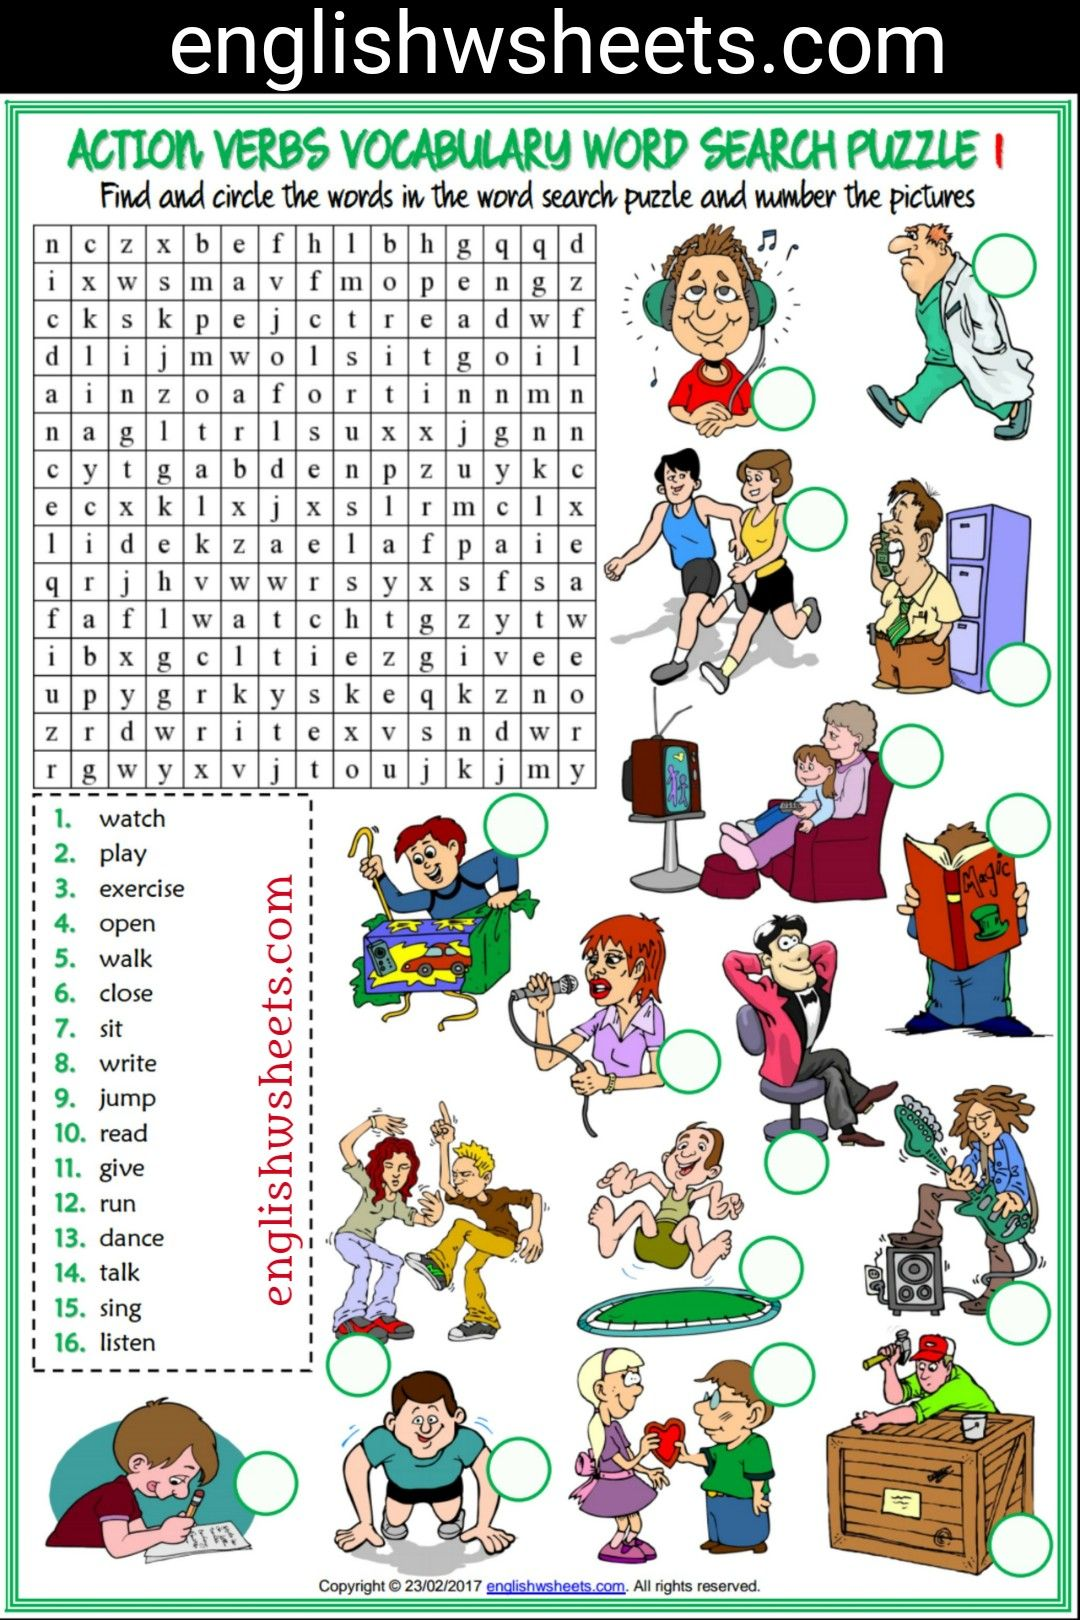 Action Verbs Esl Printable Word Search Puzzle Worksheets